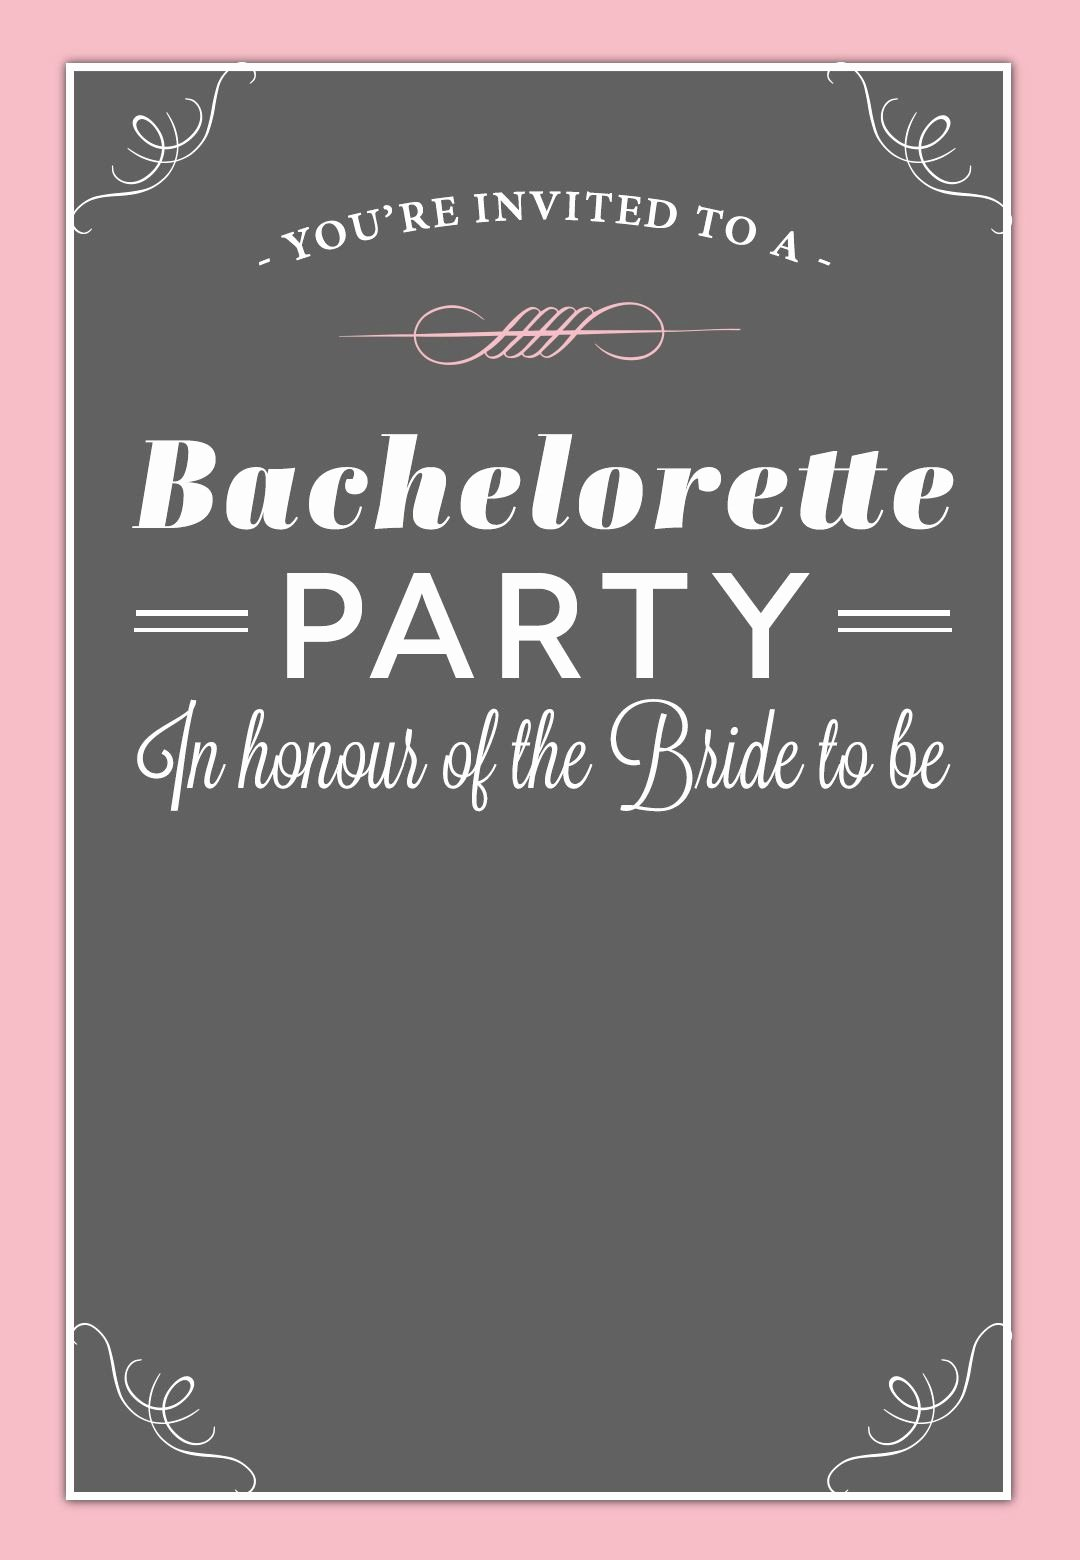 Bachelorette Party Invitations Template Free Fresh Bachelorette Party Invitation Free Printable